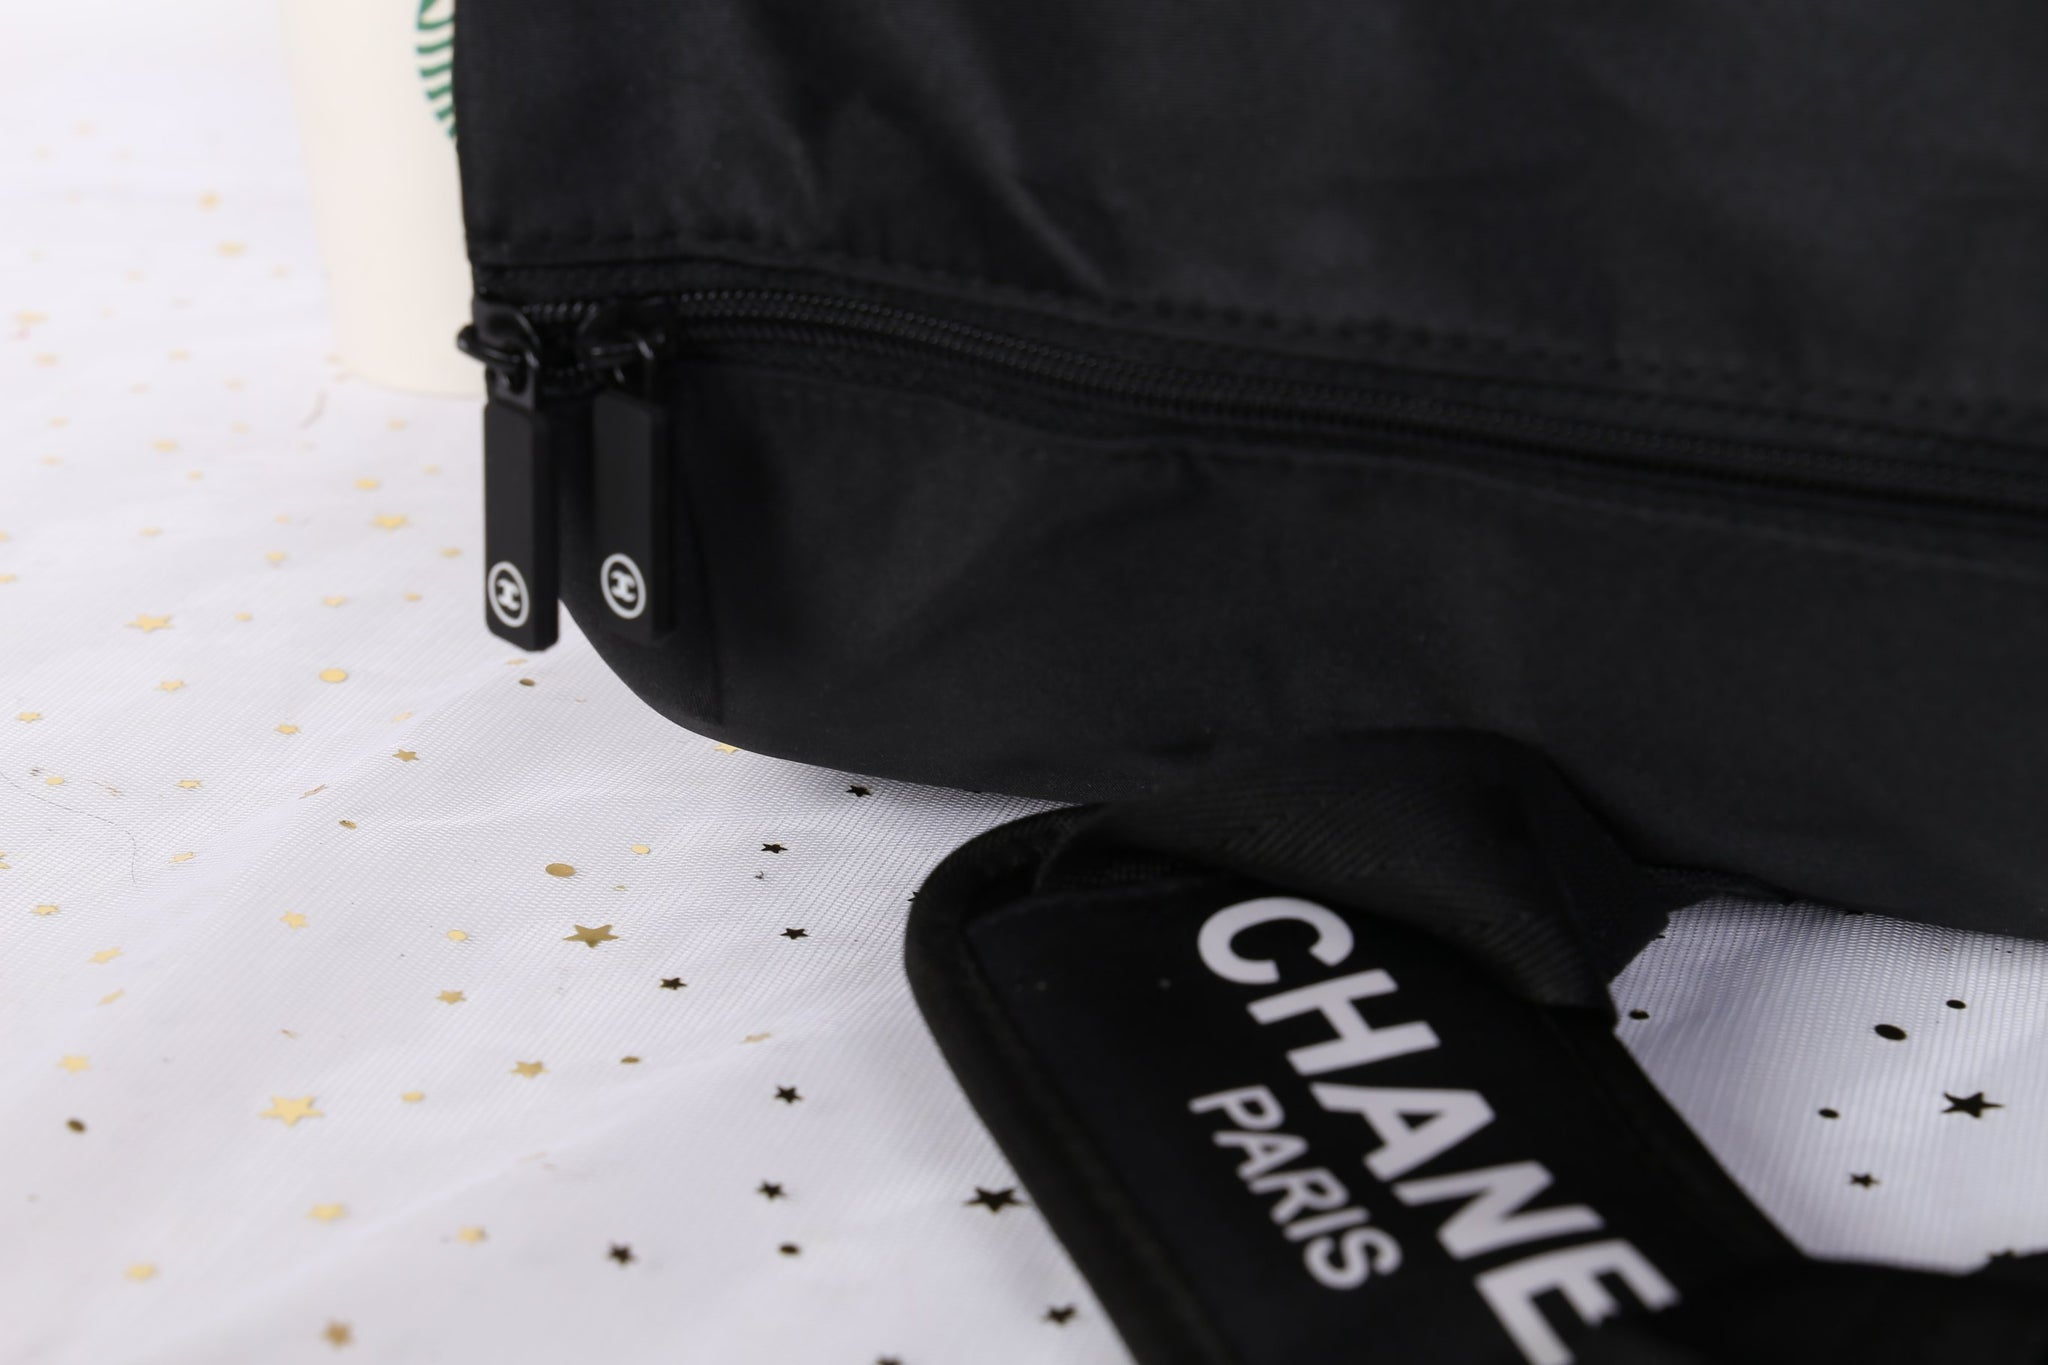 594a86afd10930 ... Chanel Black CC Logo Travel Gym Duffle Weekend Bag Large Vip Gift -  PARTYMOOD ...